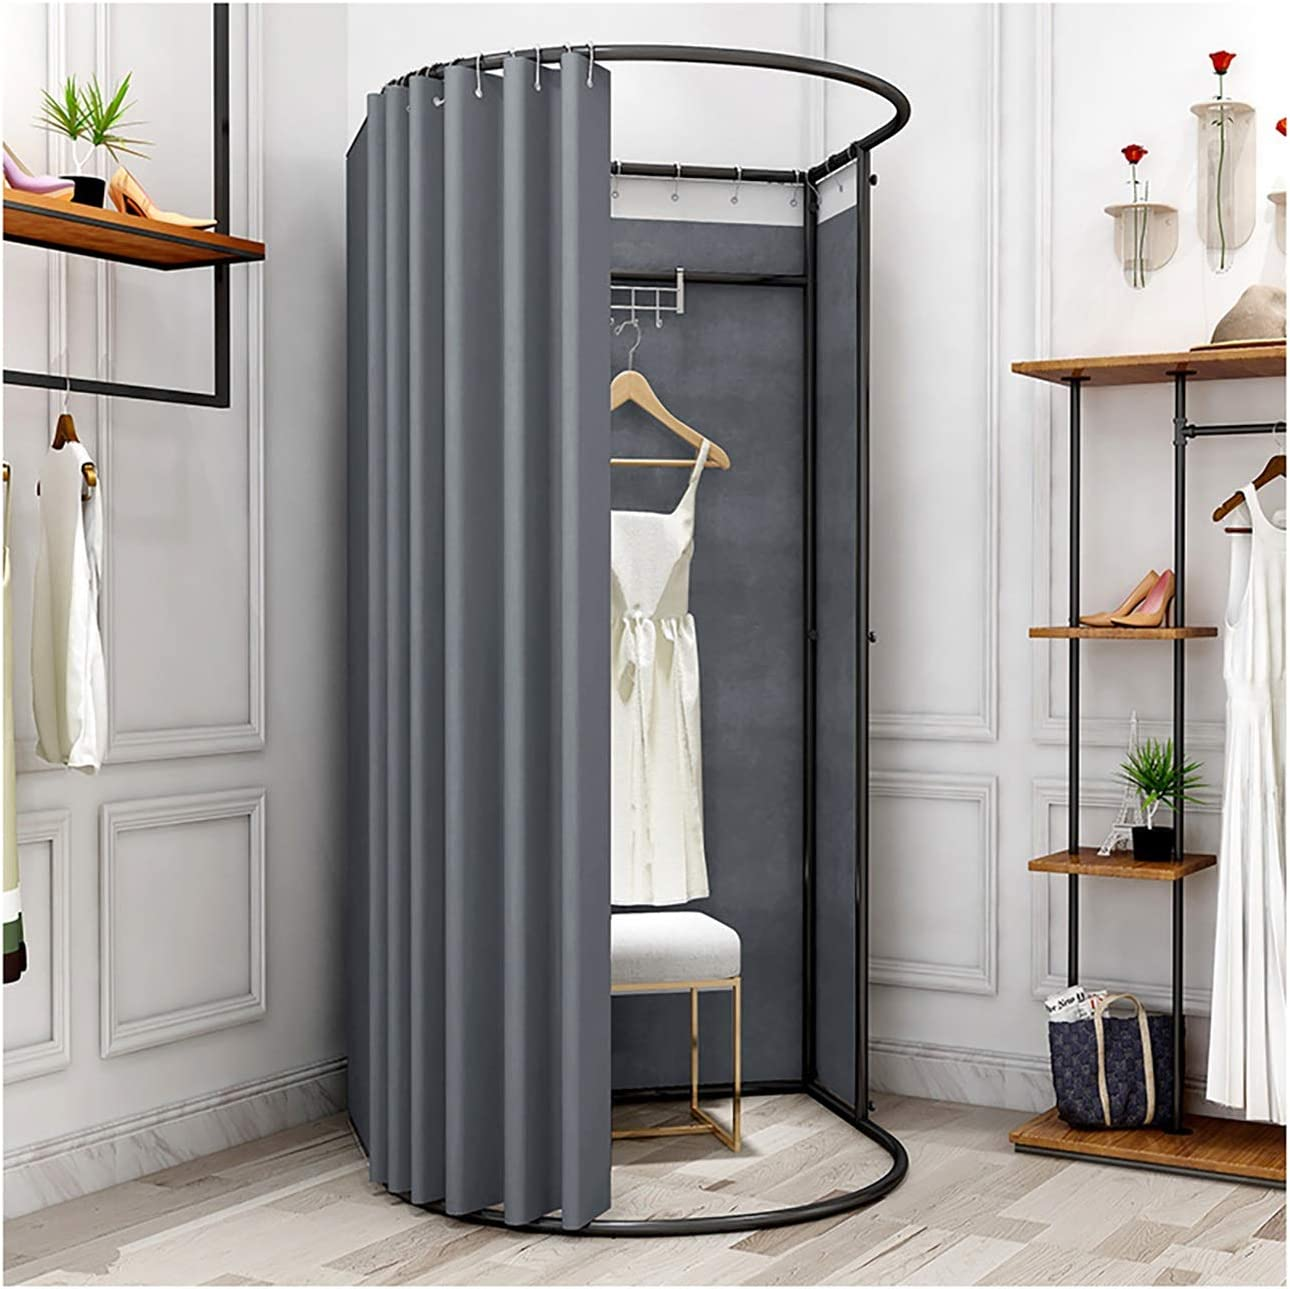 Fitting Room OFFer Clothing Genuine Free Shipping Store Rack Display Landing